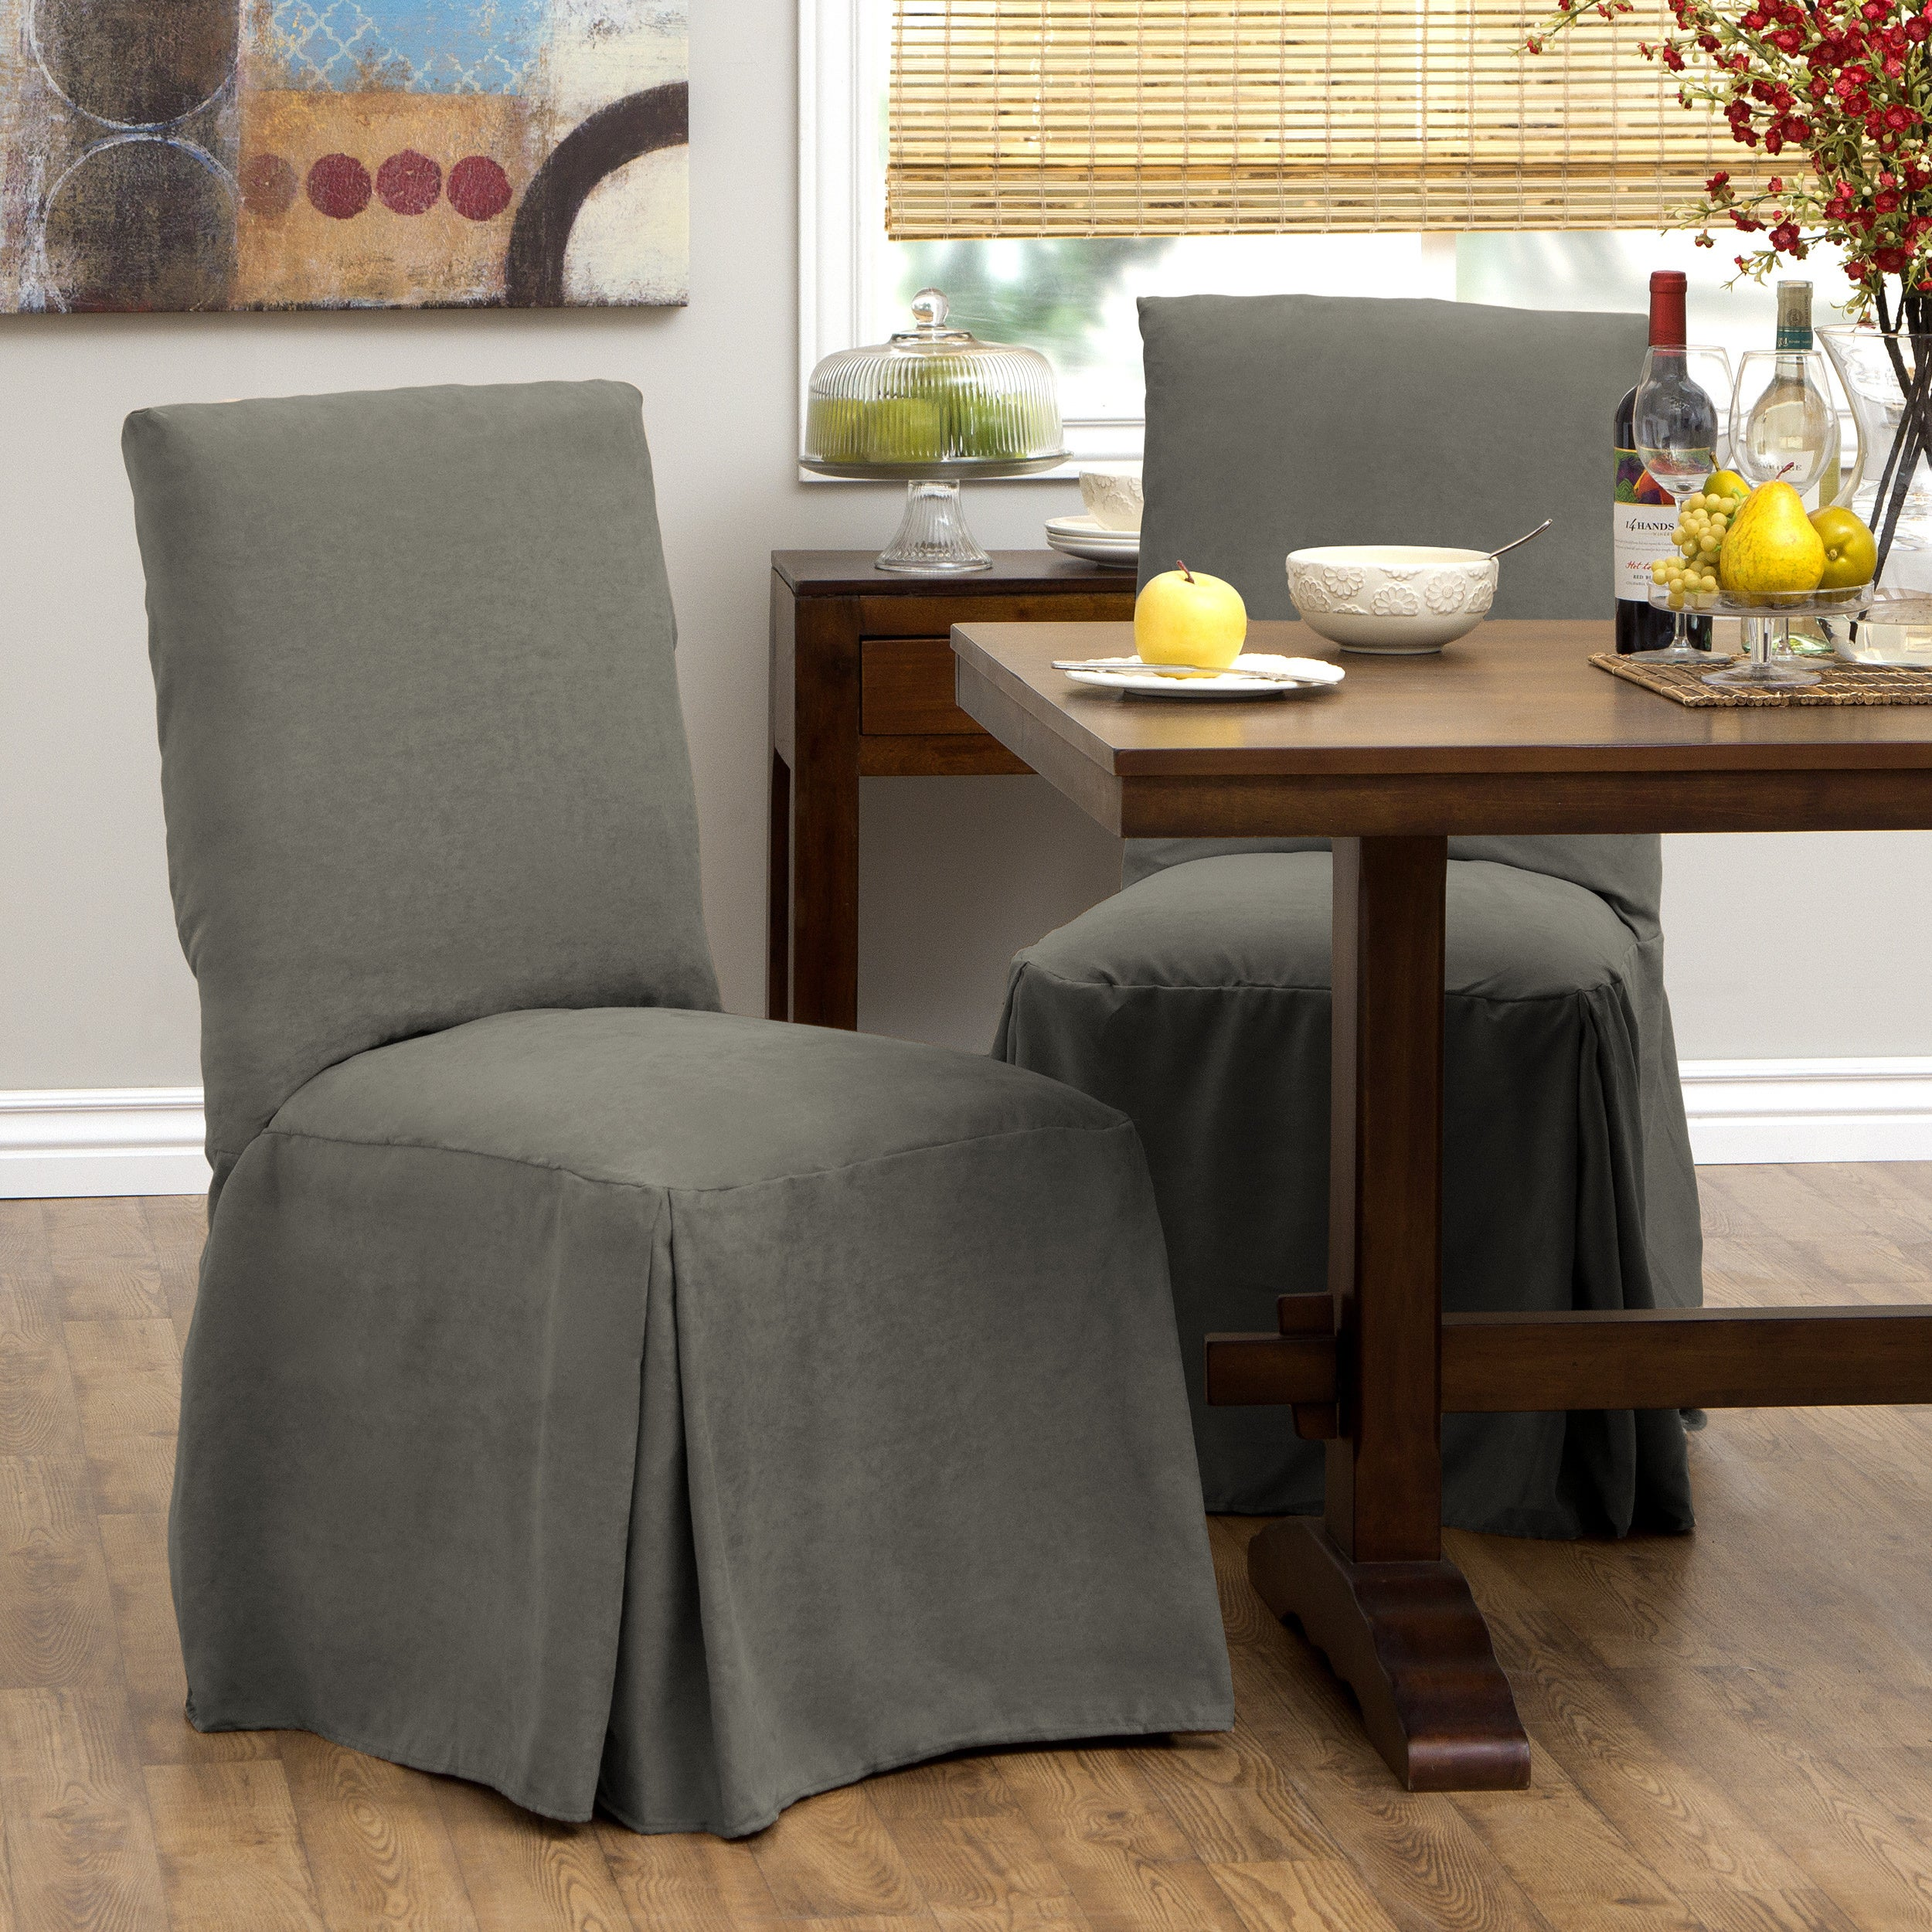 Tailor Fit Relaxed Fit Smooth Suede Tall Dining Chair Slipcover (Set Of 2)    Free Shipping Today   Overstock.com   16739134